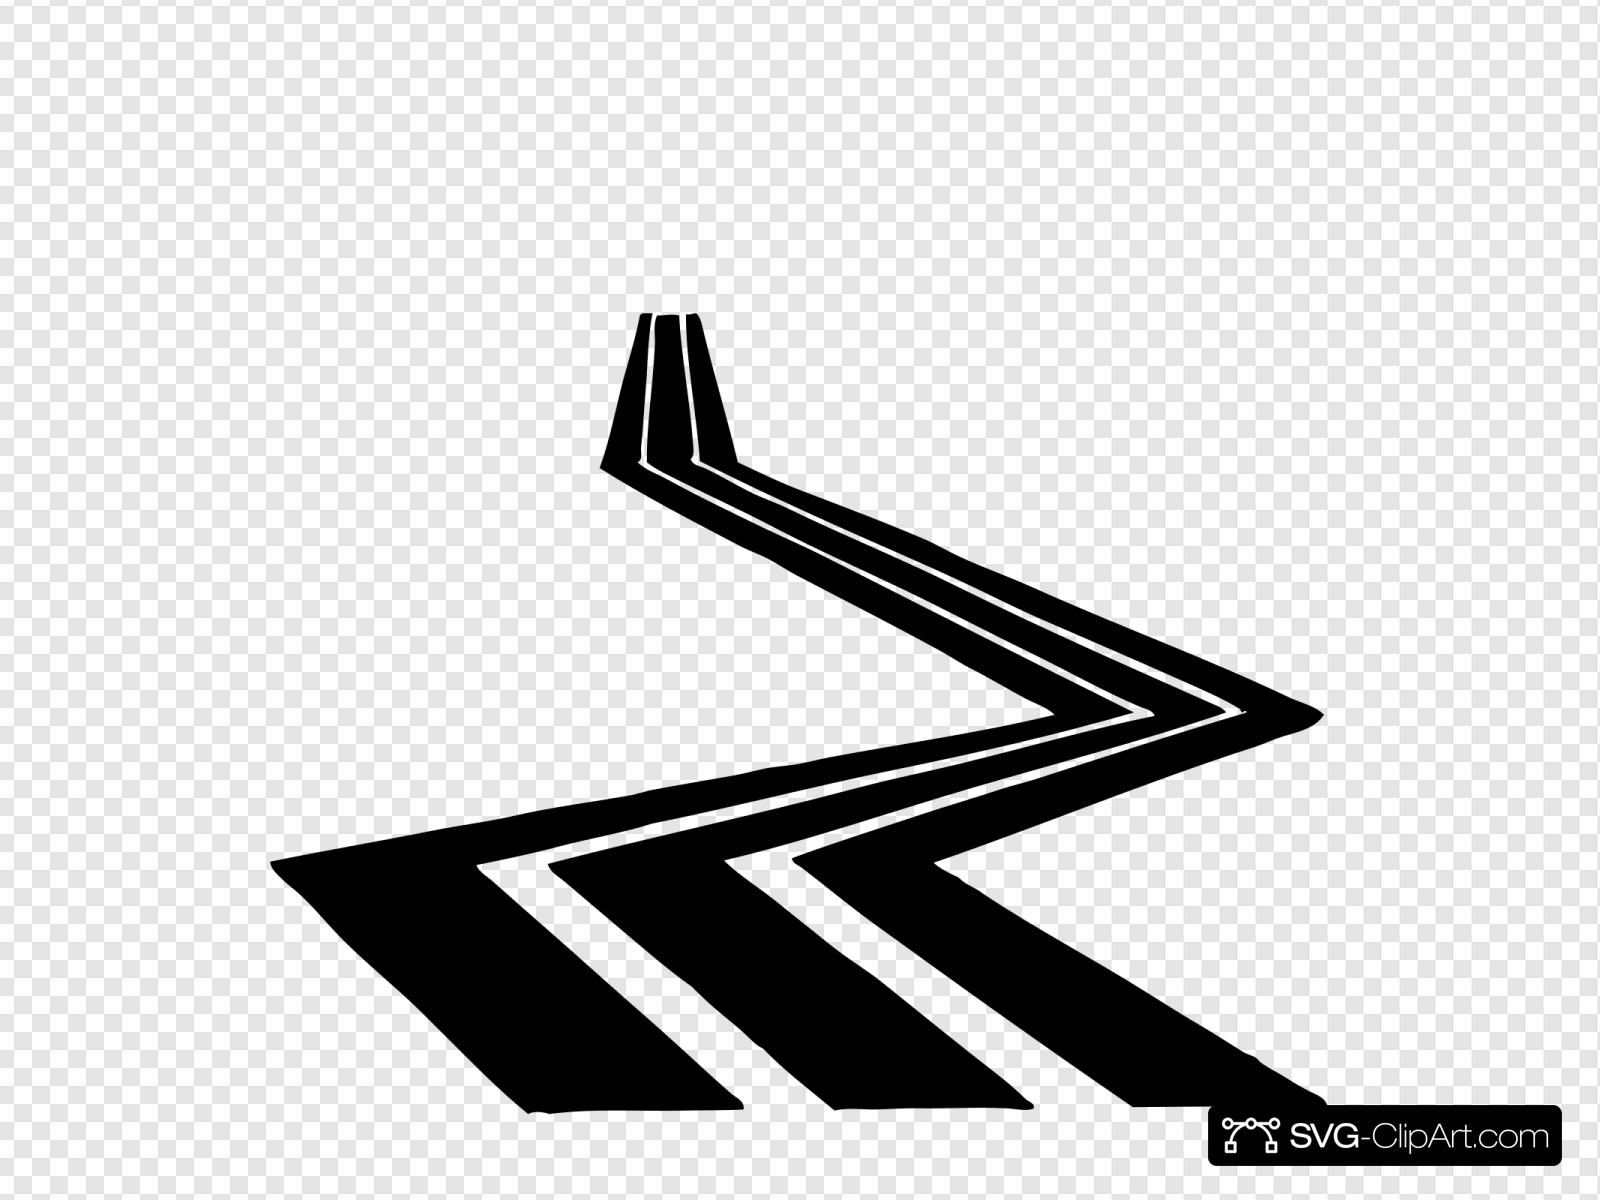 Clipart road road map, Clipart road road map Transparent FREE for download  on WebStockReview 2020